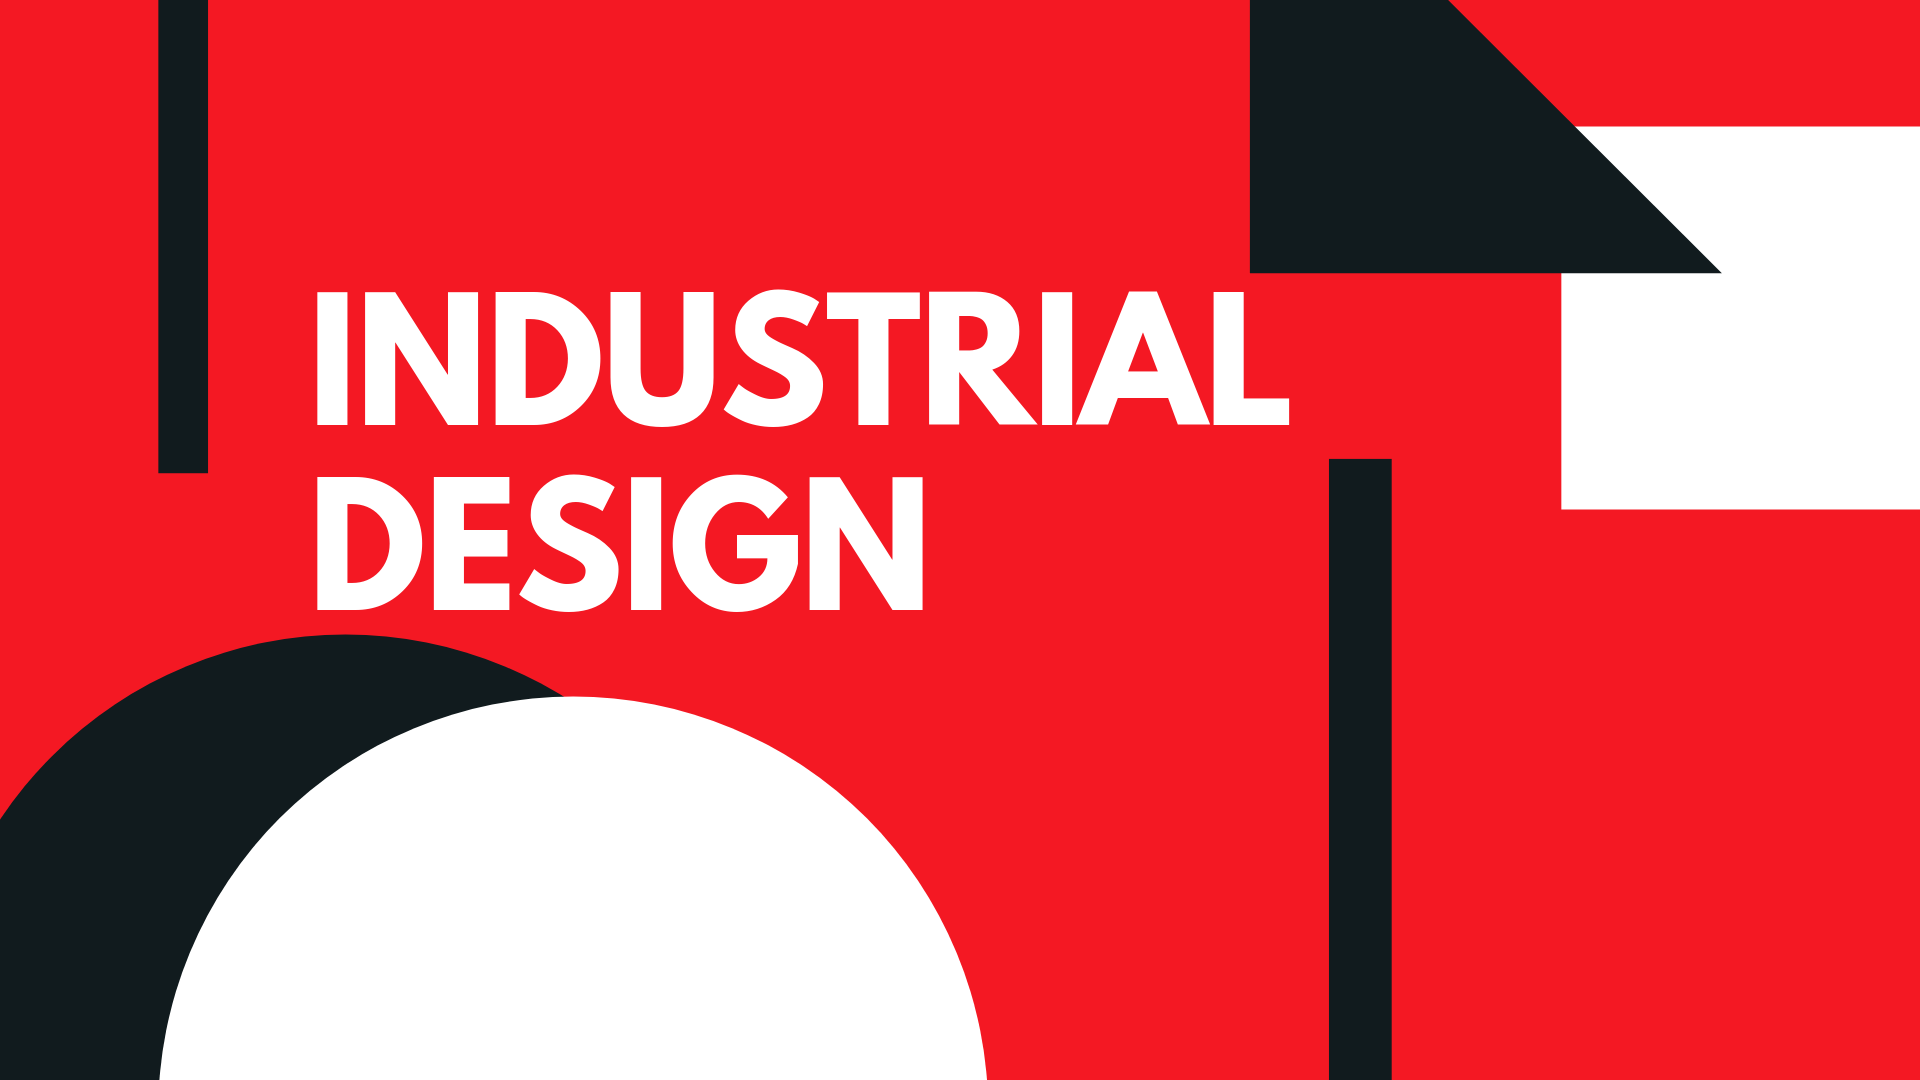 An industrial design right is an intellectual property right that protects the visual design of ... with the Designing and Printing of Linen Act and have expanded from there. Registering for an industrial design right is related to granting a patent.